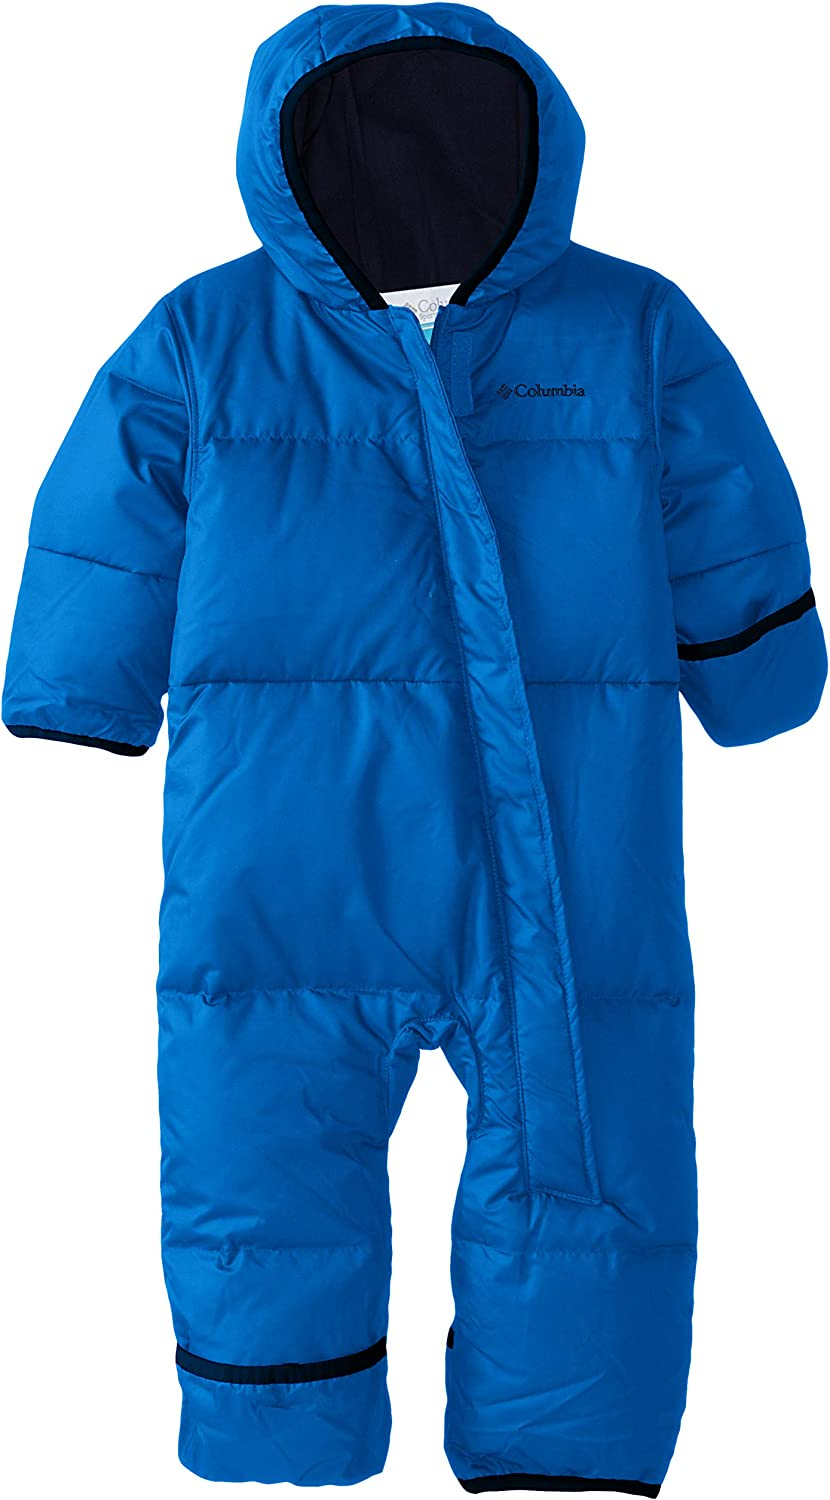 Collegiate Navy Super Blue Columbia Sportswear Snuggly Bunny Bunting Insulated Jacket Size 12//18